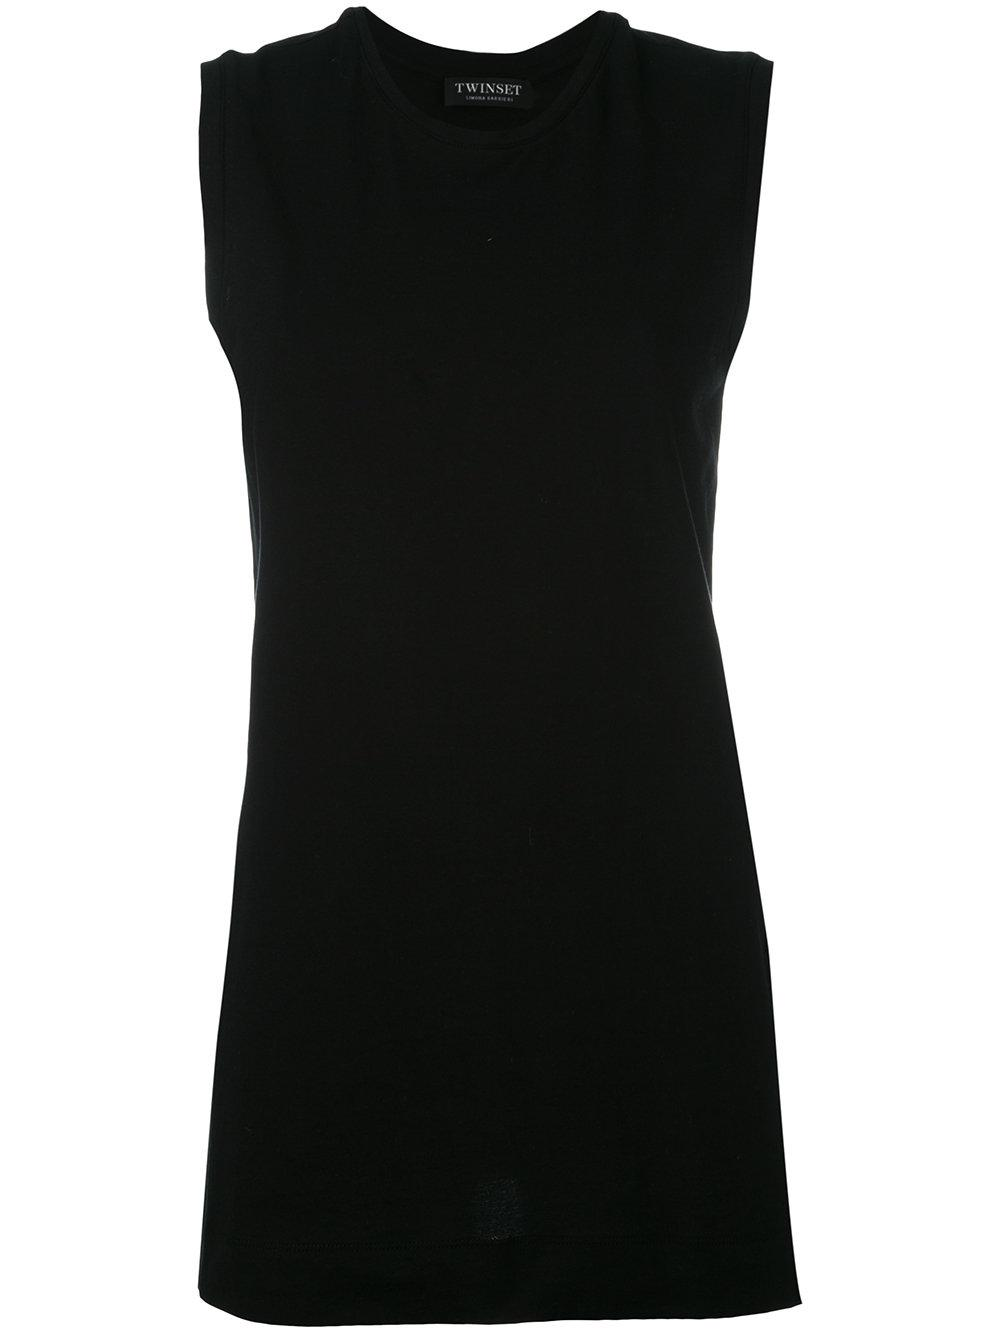 Twin Set Oversized Sleeveless T Shirt In Black Lyst